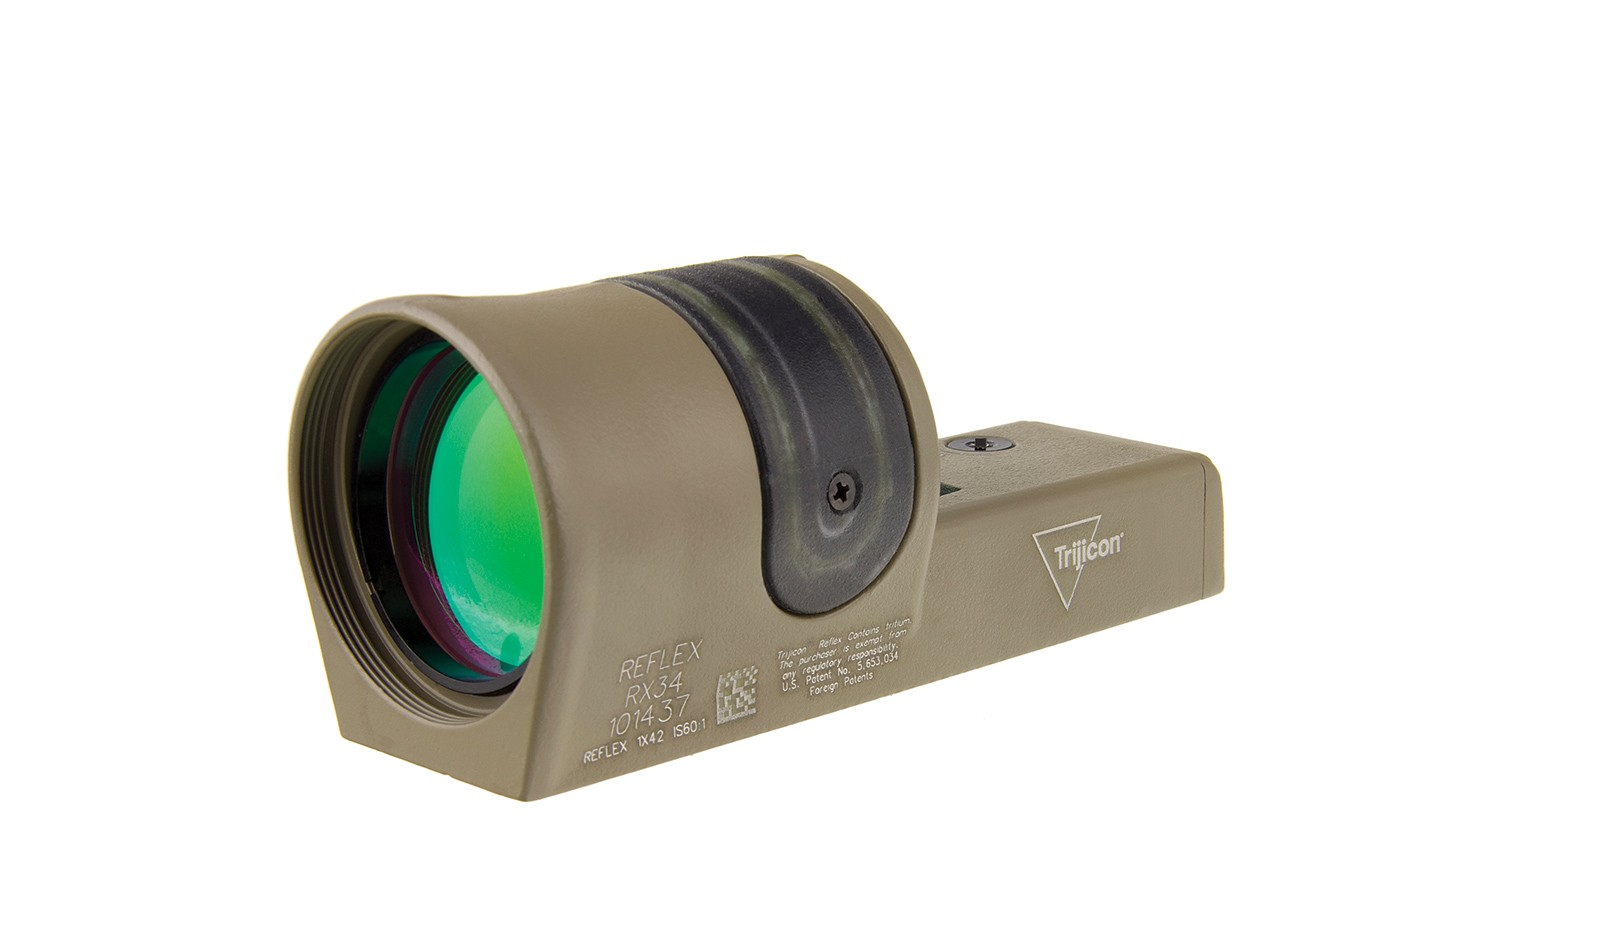 Trijicon® Reflex 1x42 Dual Illuminated Sight - FDE